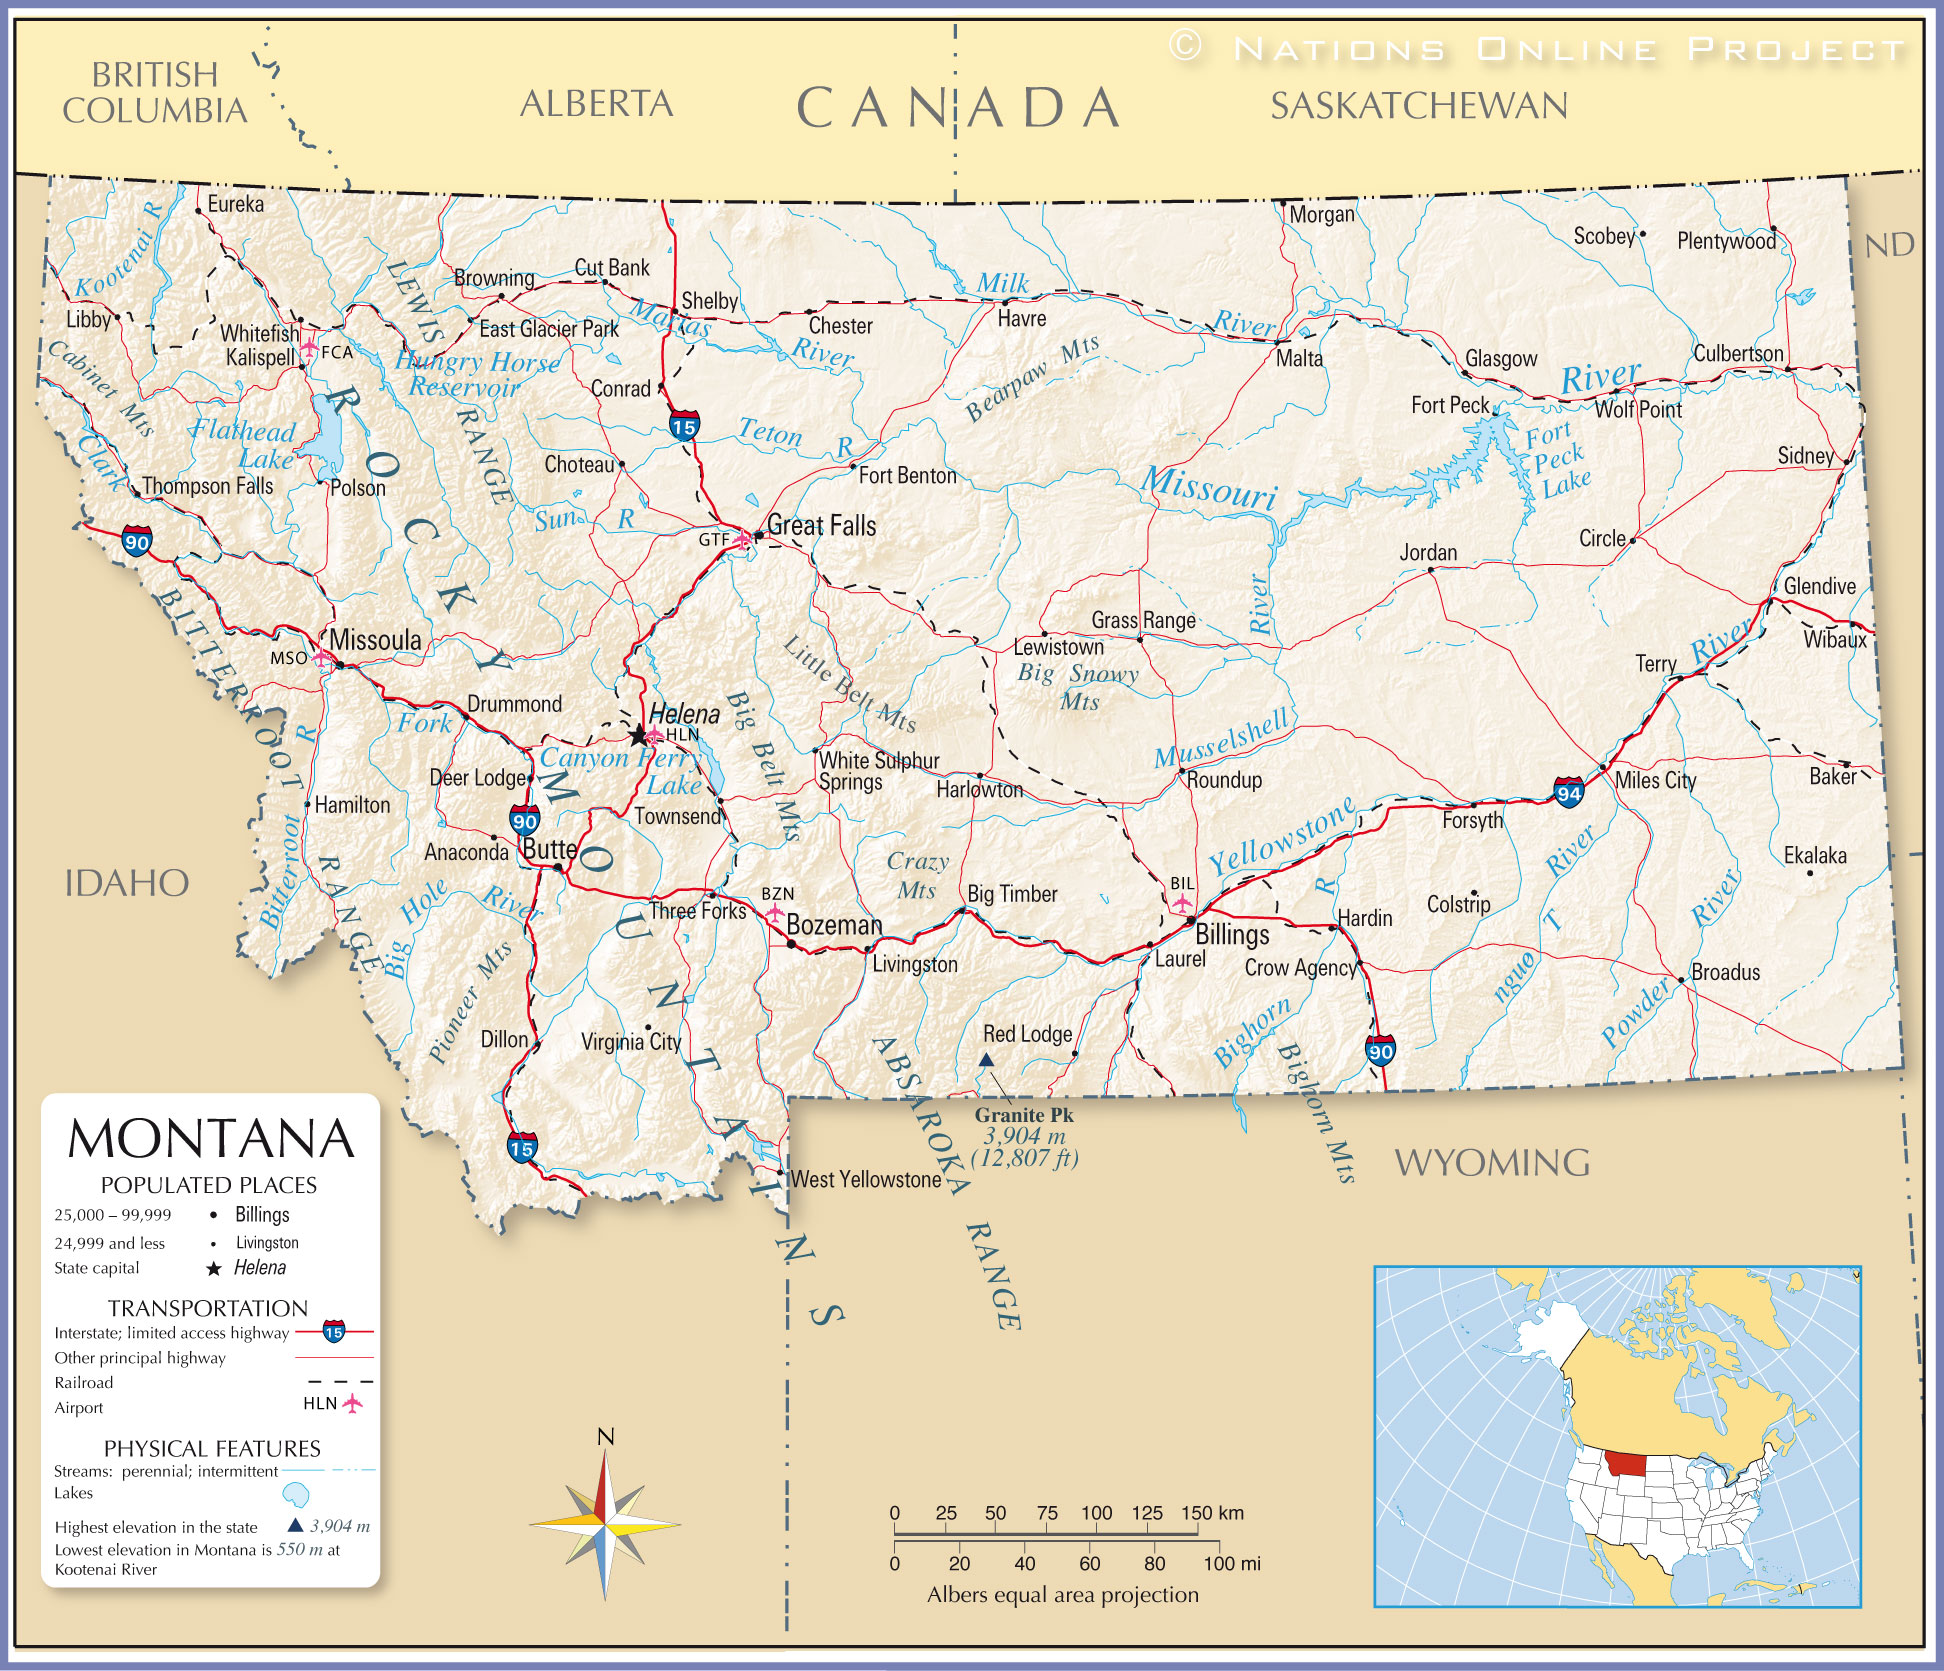 Reference Map Of Montana USA Nations Online Project - Political map of south dakota